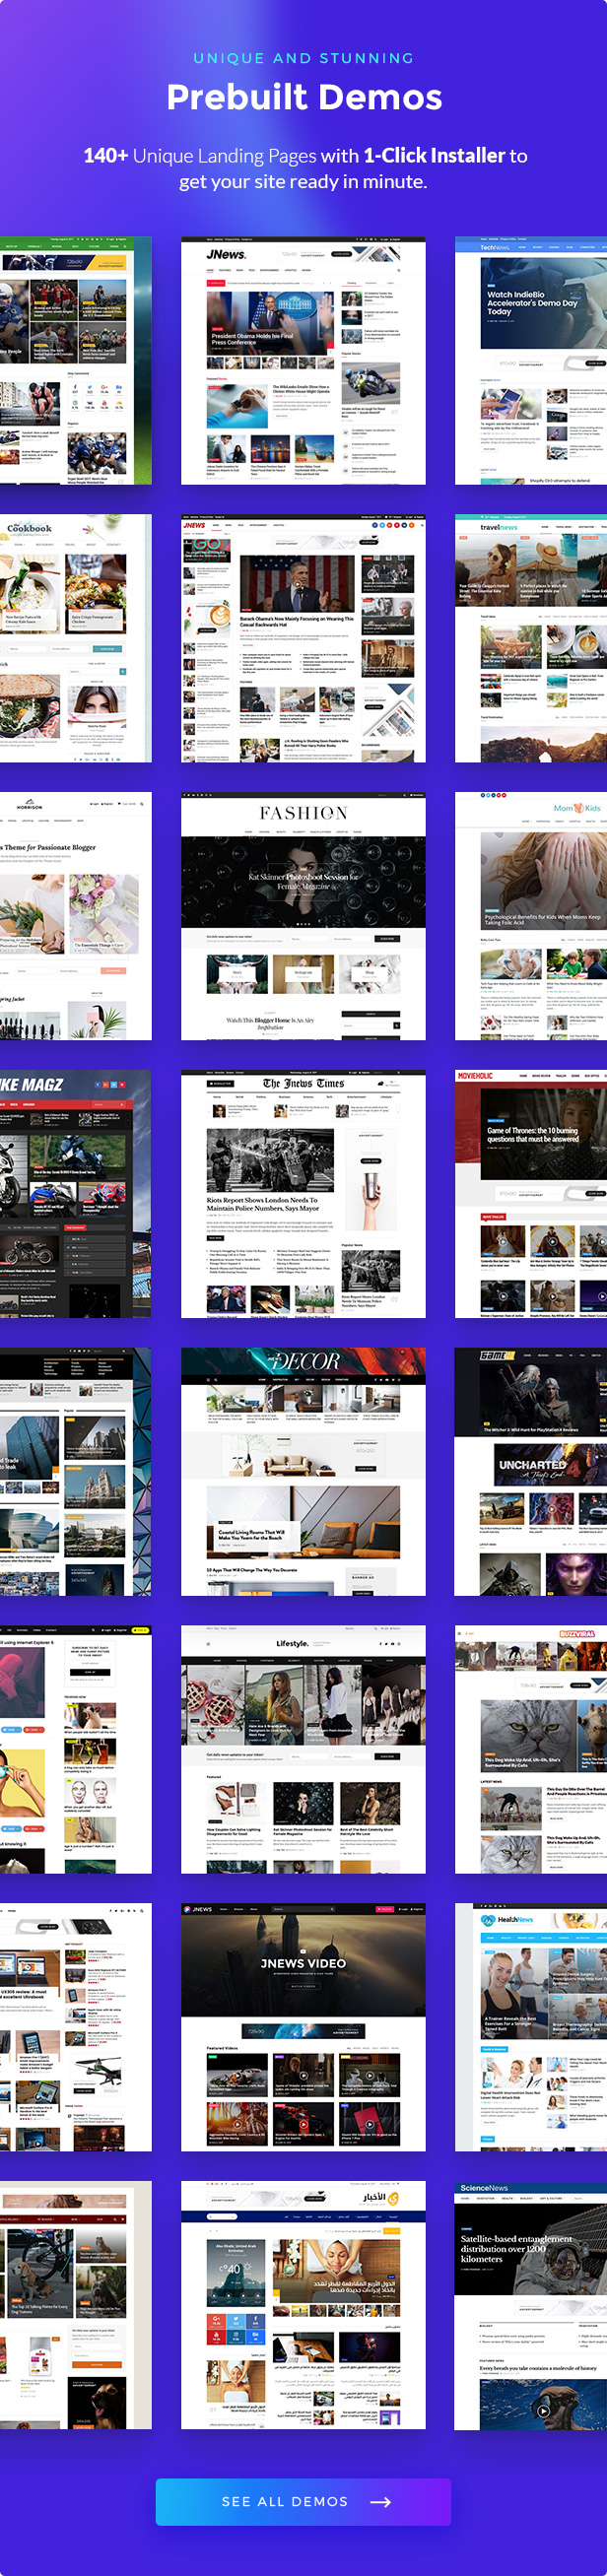 JNews - WordPress Newspaper Magazine Blog AMP Theme - 21